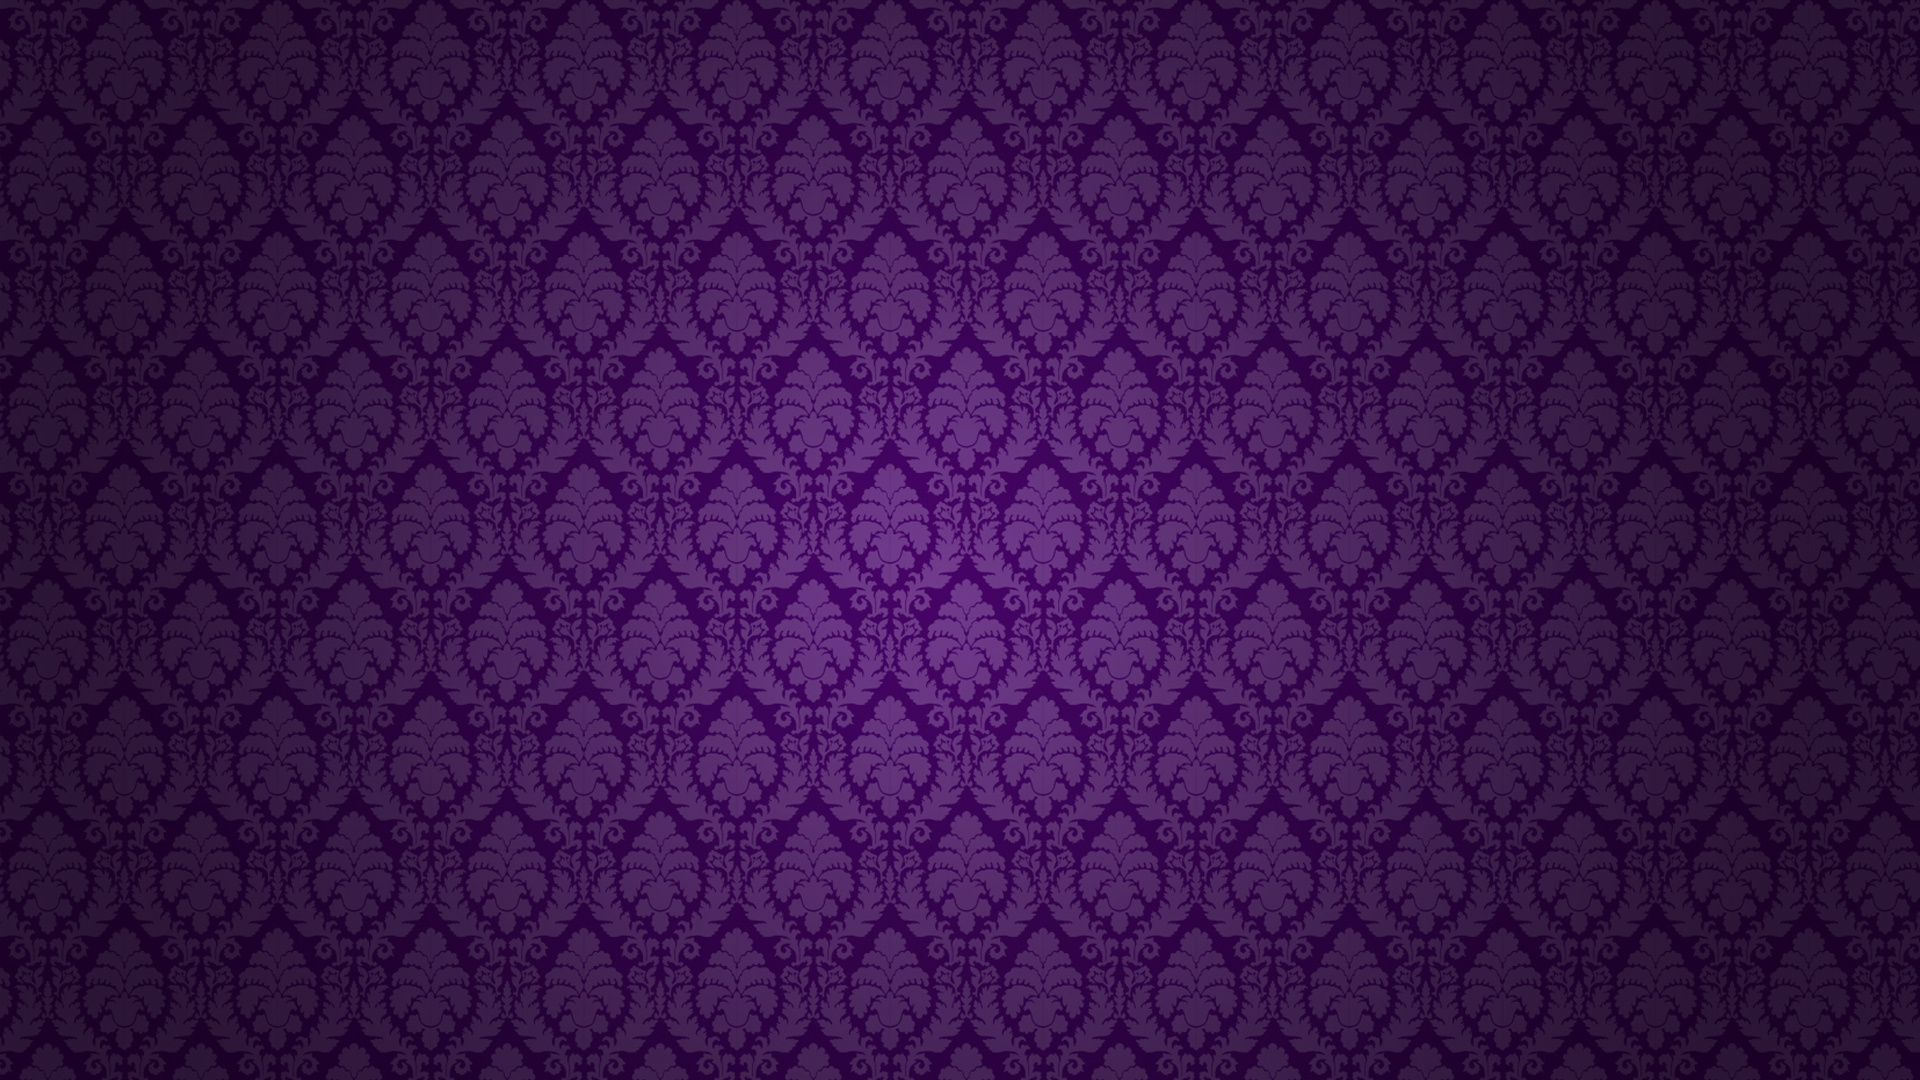 Purple & Black Bedroom Ideas Part - 48: Purple Wallpaper Vintage Wall 1080p